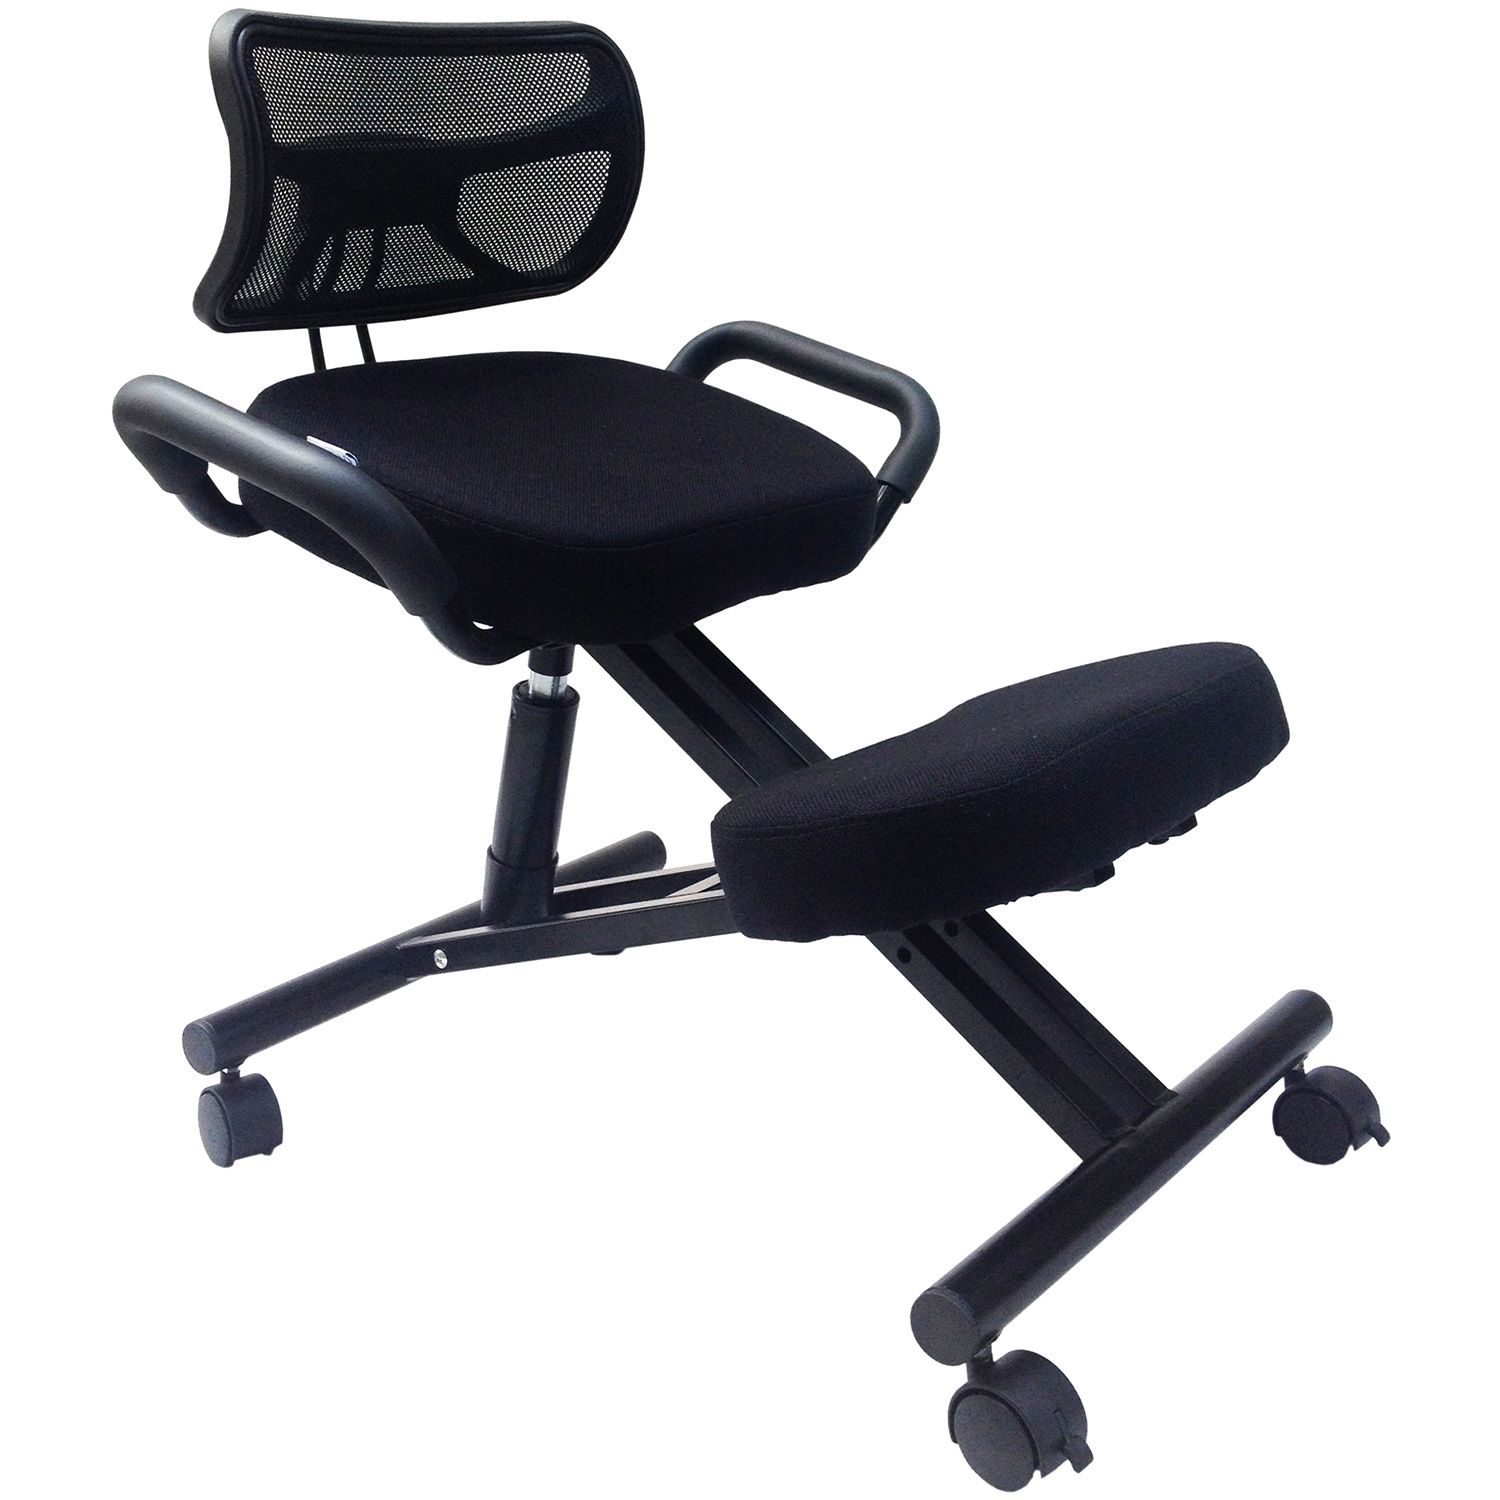 Ergonomic Chair Sierra Comfort Sc 300 Ergonomic Kneeling Chair With Back